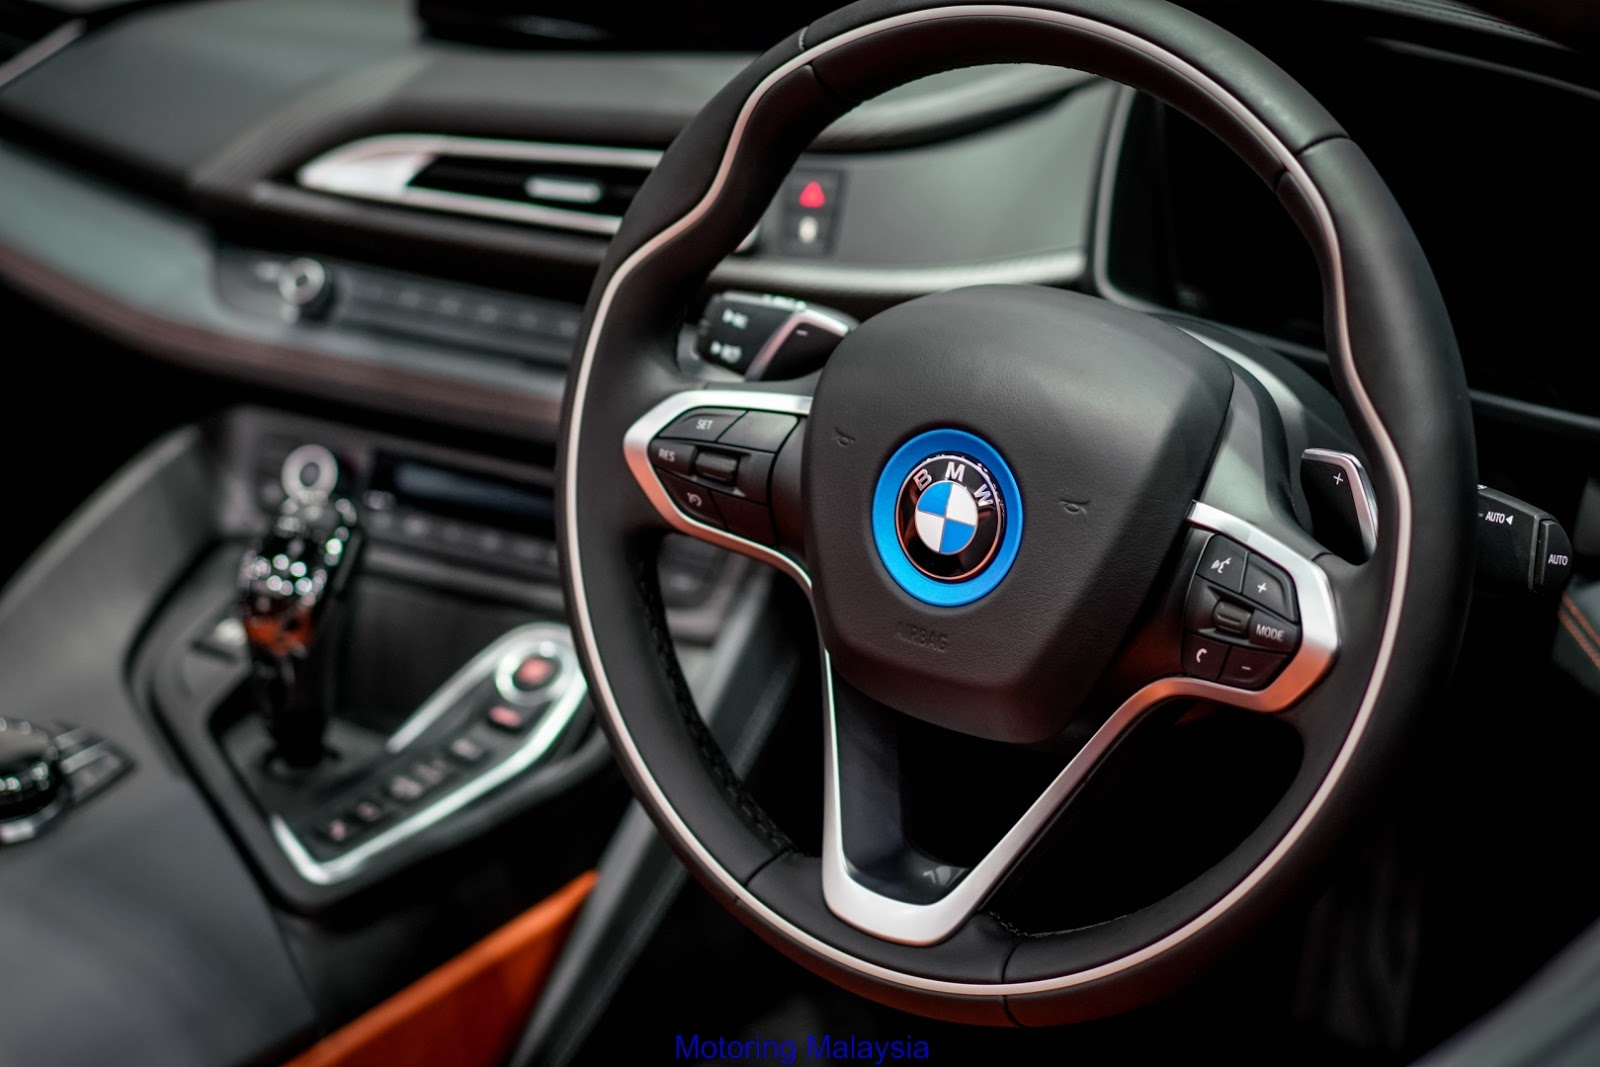 Motoring Malaysia Bmw Malaysia Launches The Bmw I8 Roadster For The